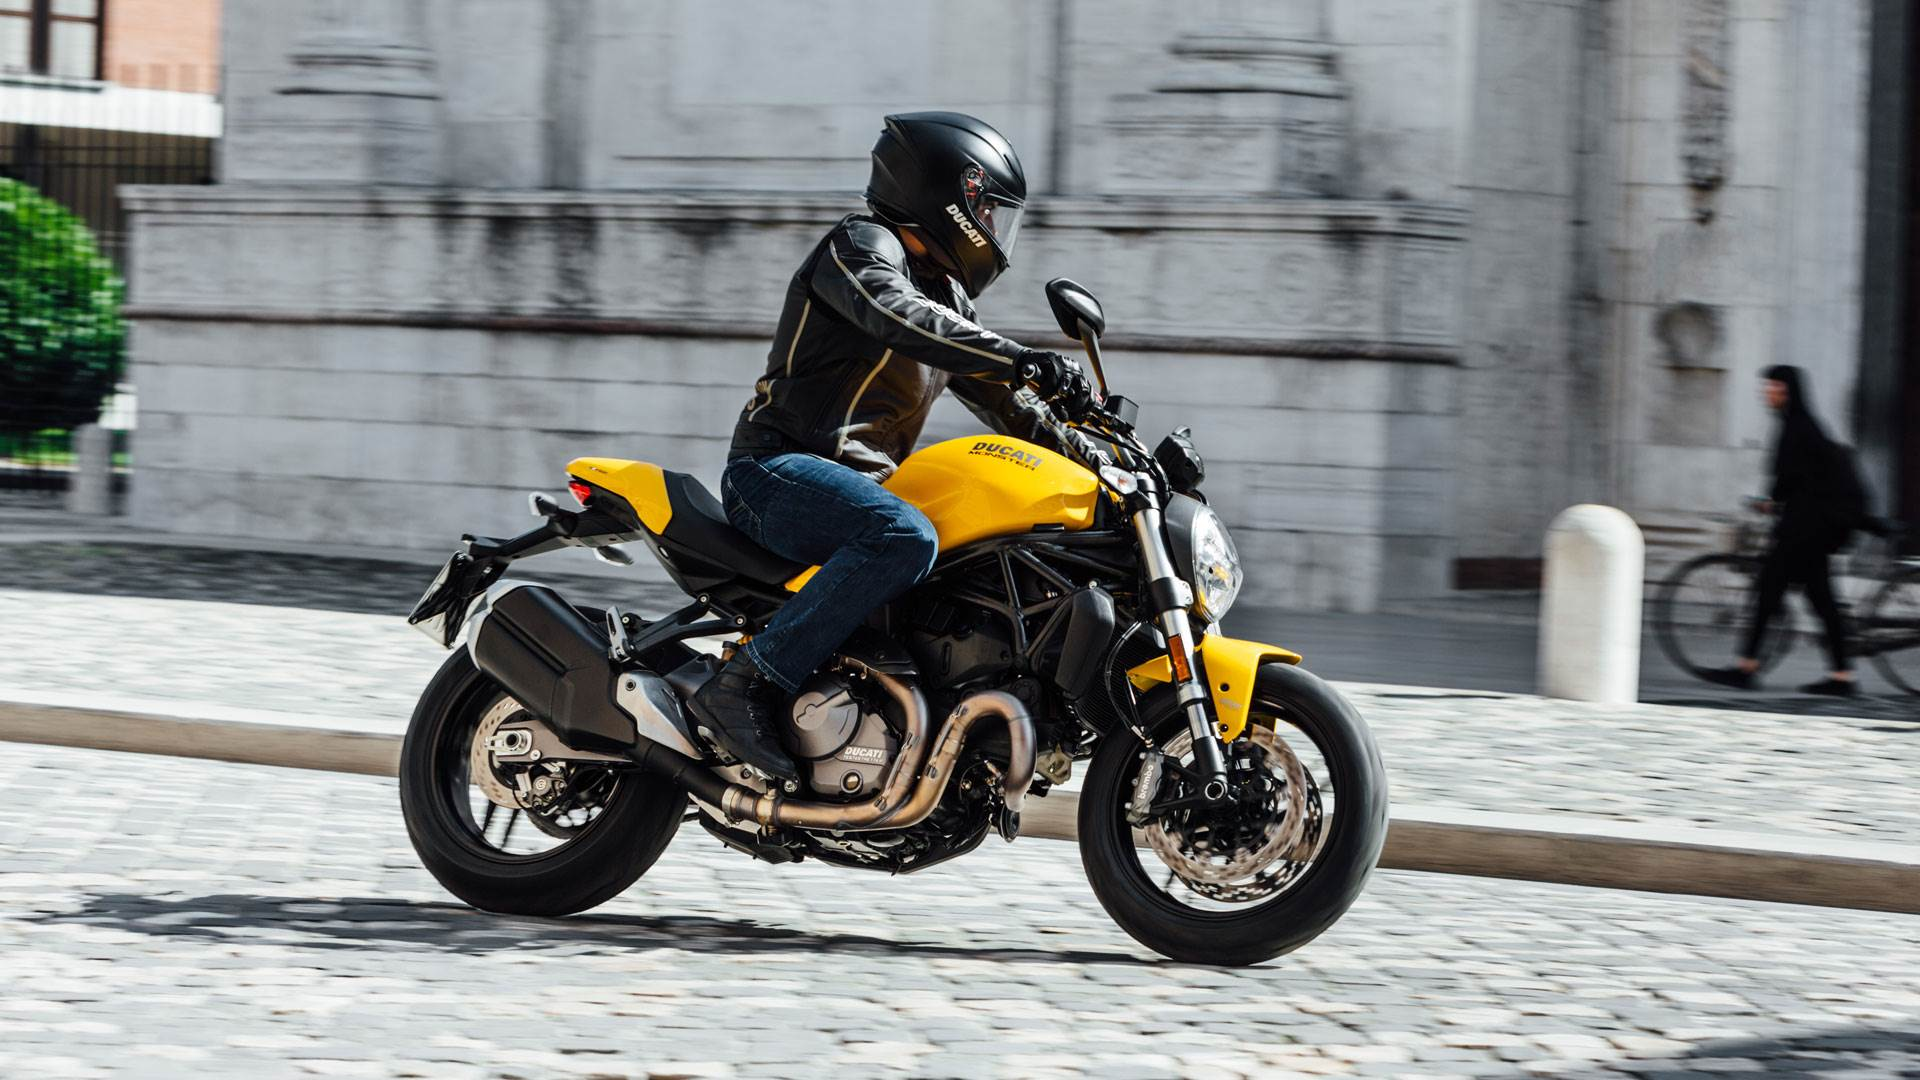 2018 Ducati Monster 821 to launch in India on May 1